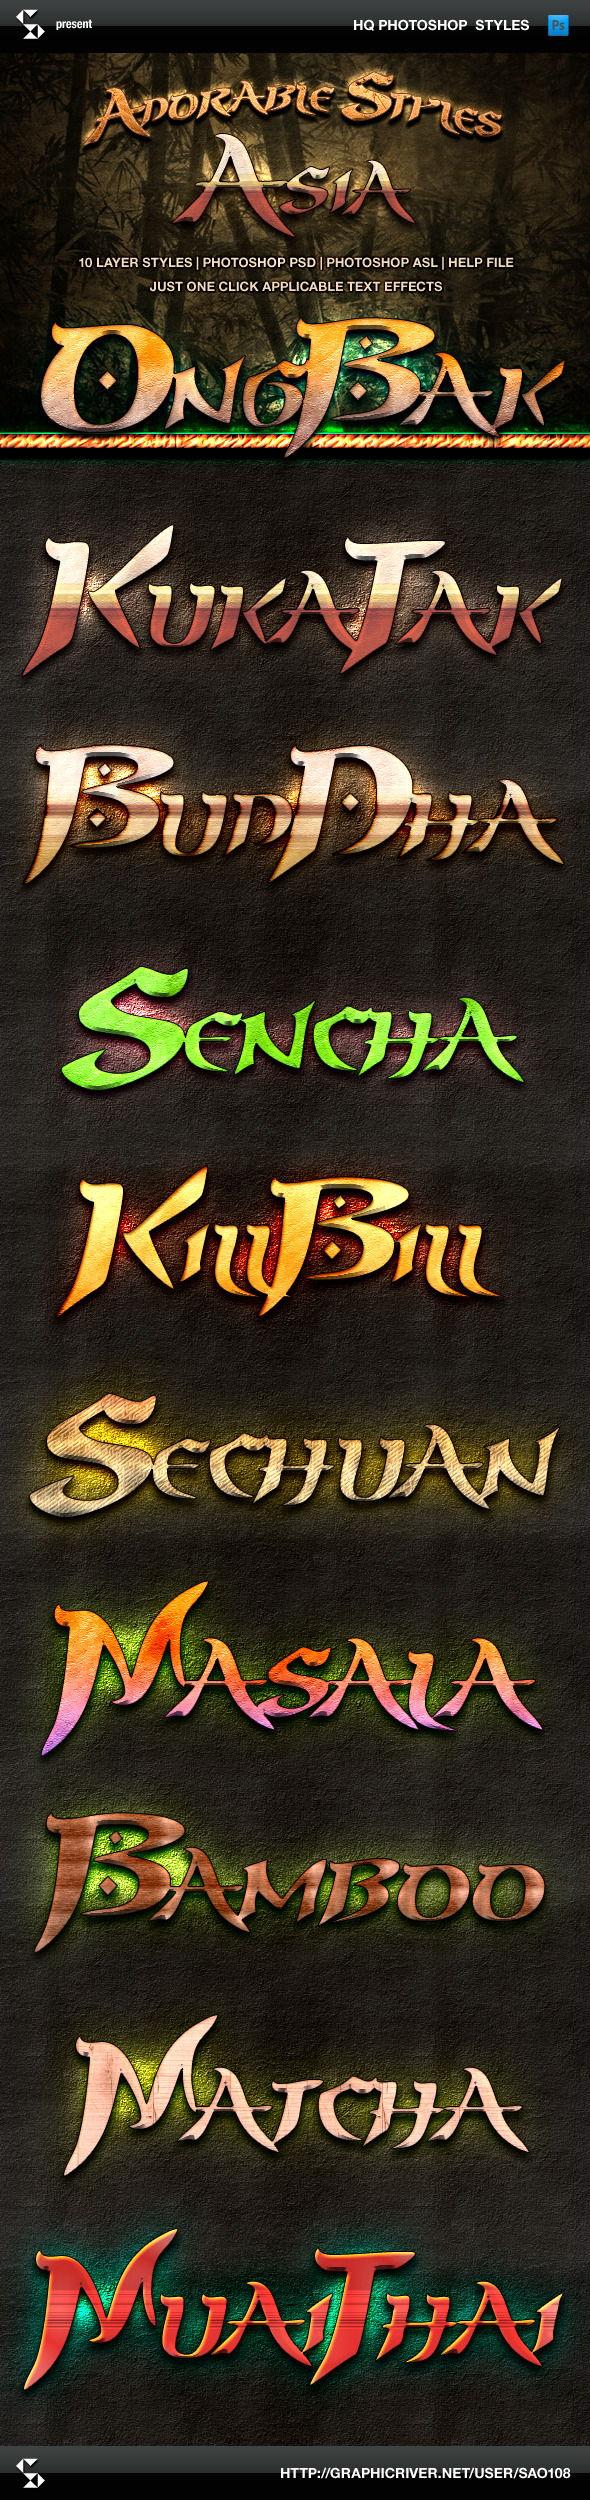 Adorable Asia Style Text Effects